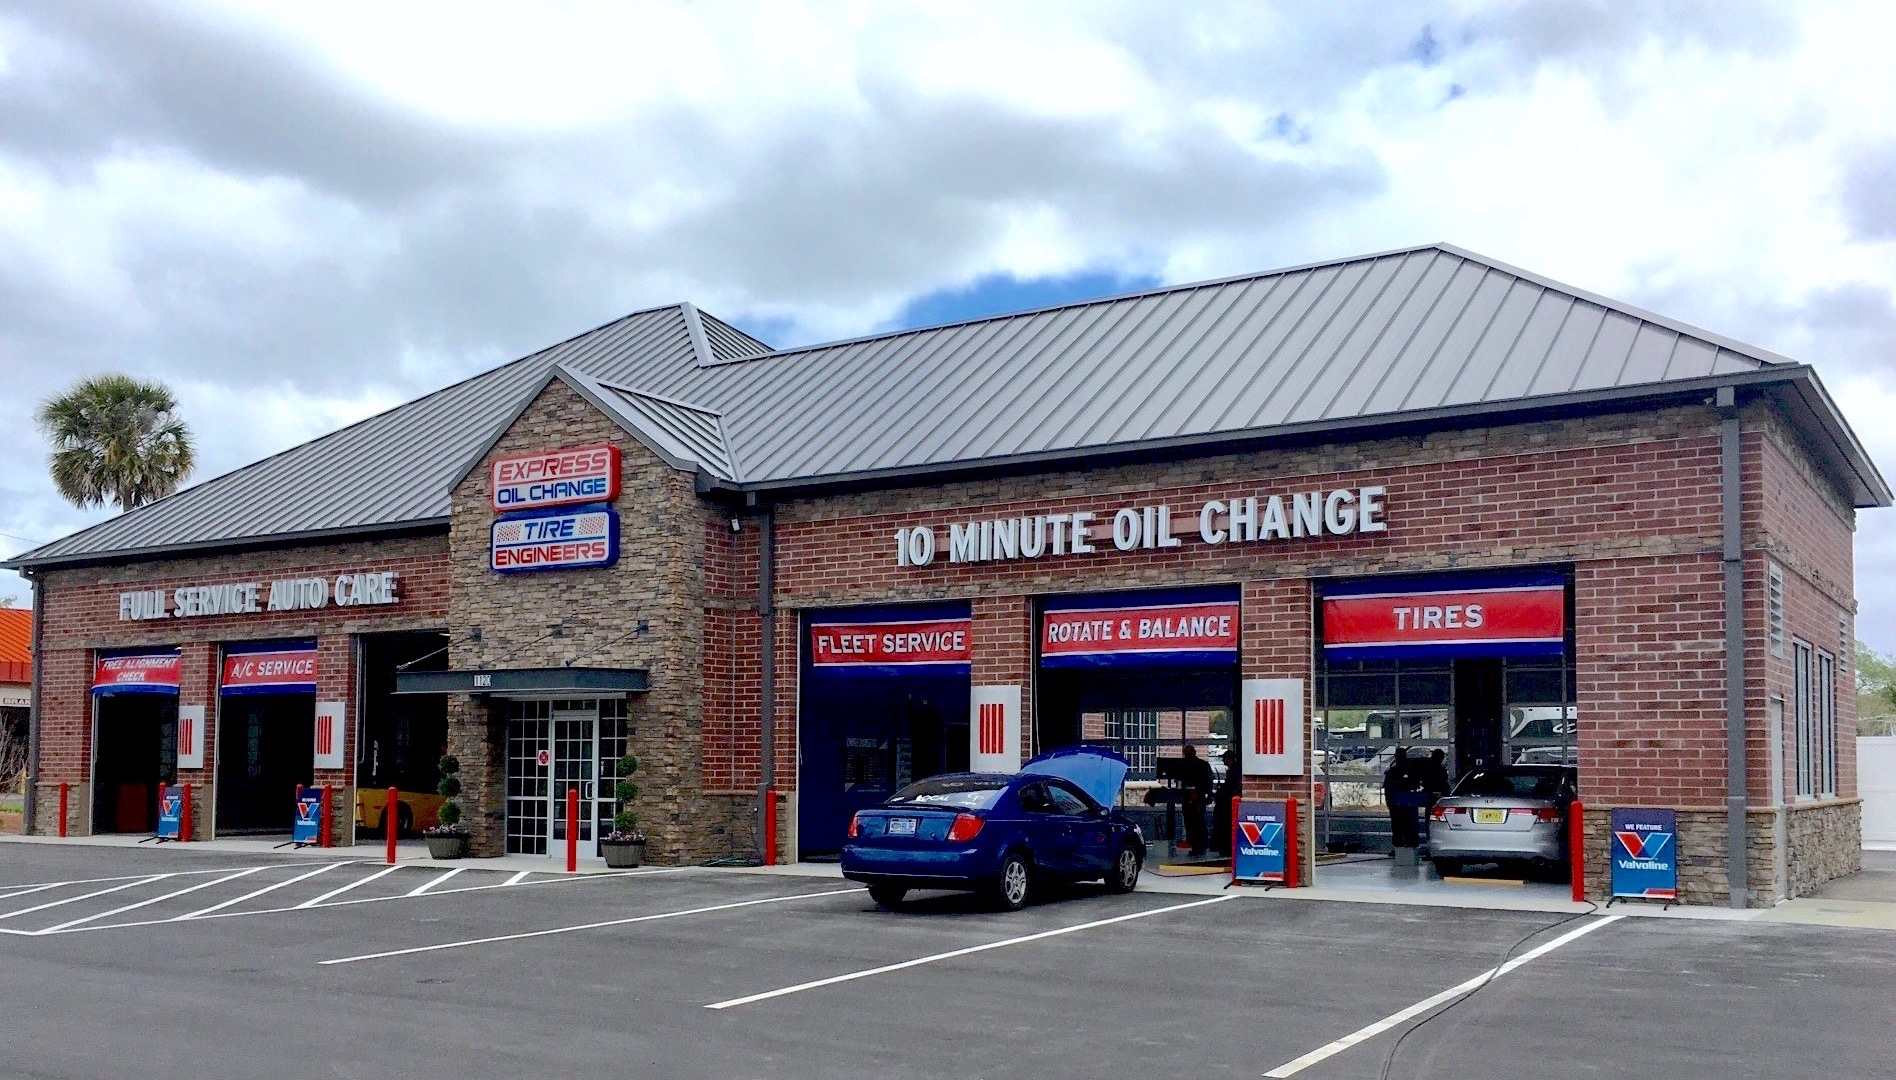 Express Oil Change & Tire Engineers Oviedo, FL store